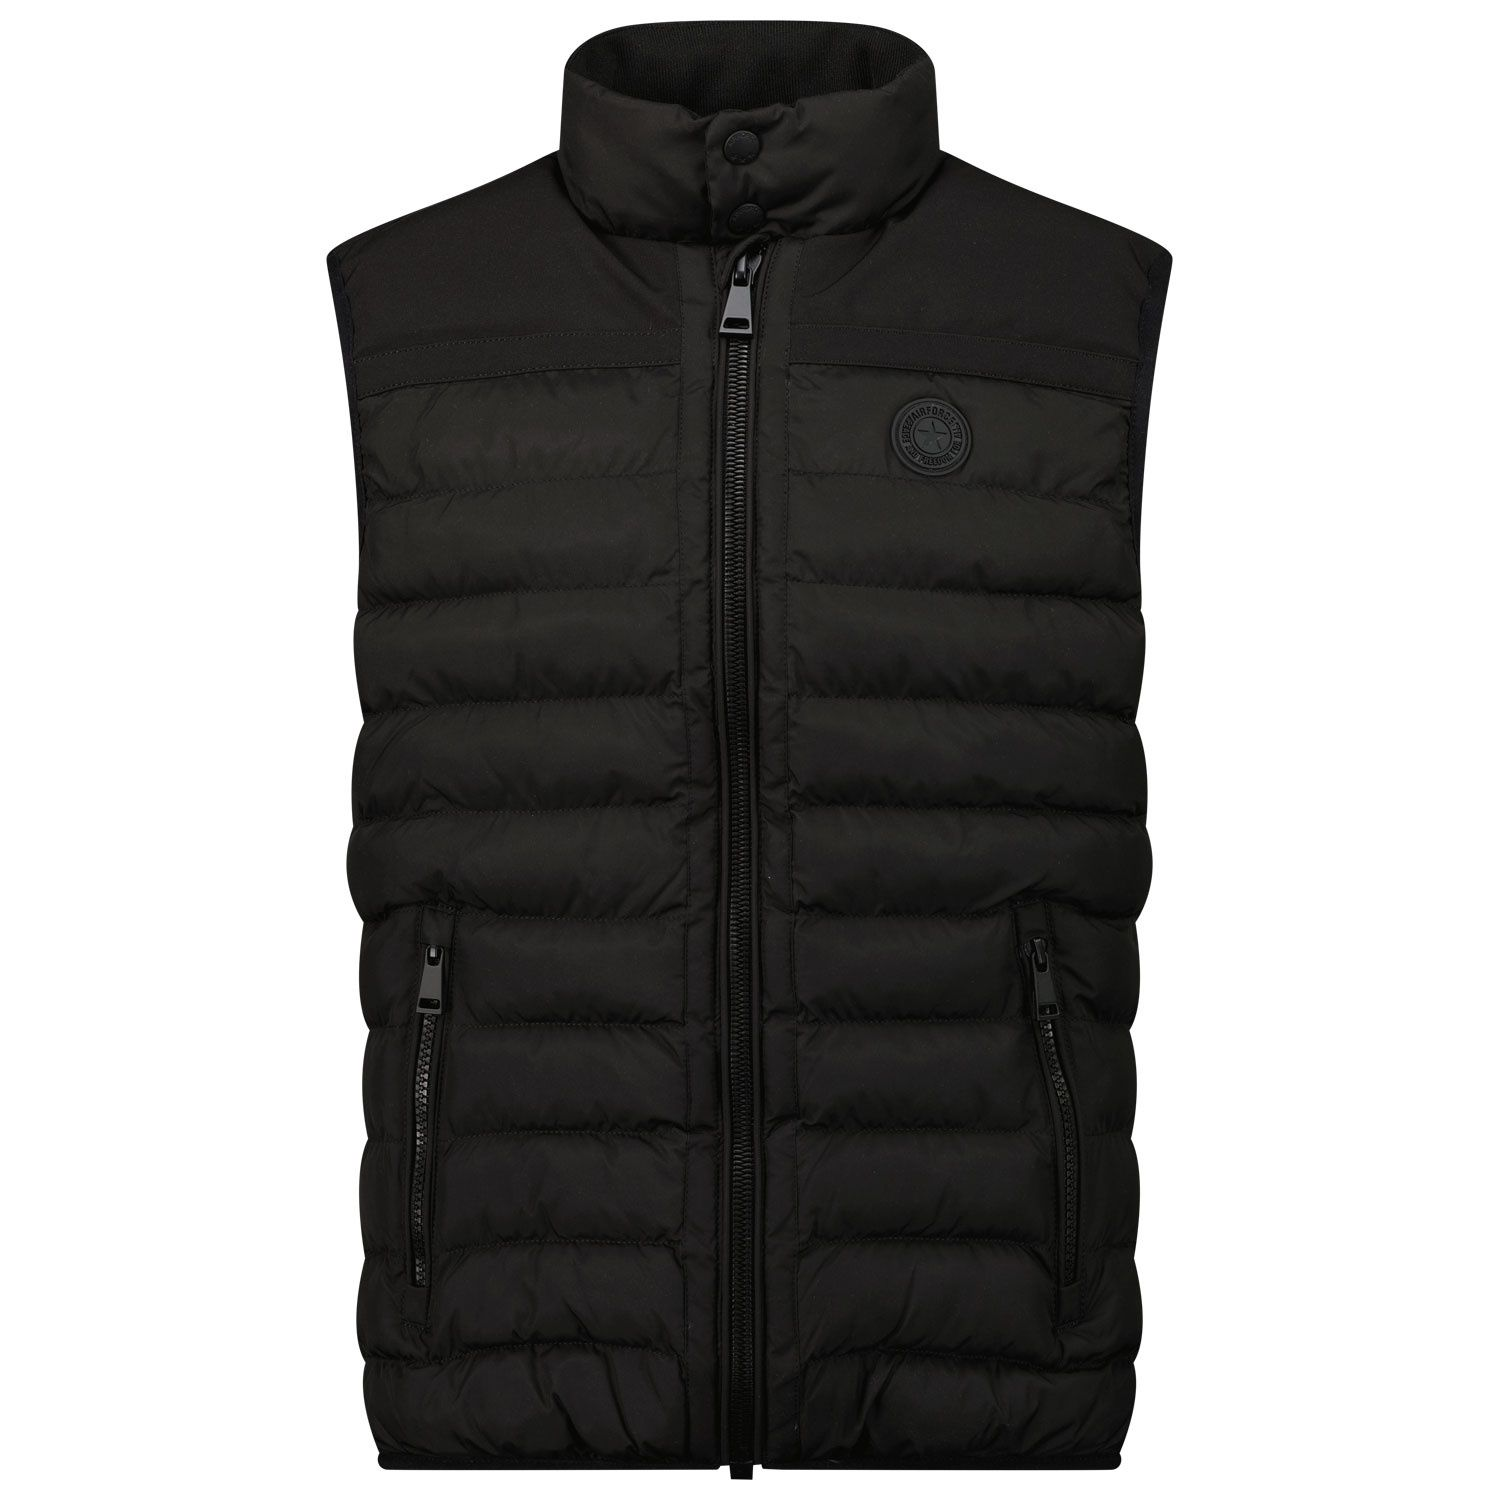 Picture of Airforce FRB0532 kids bodywarmer black